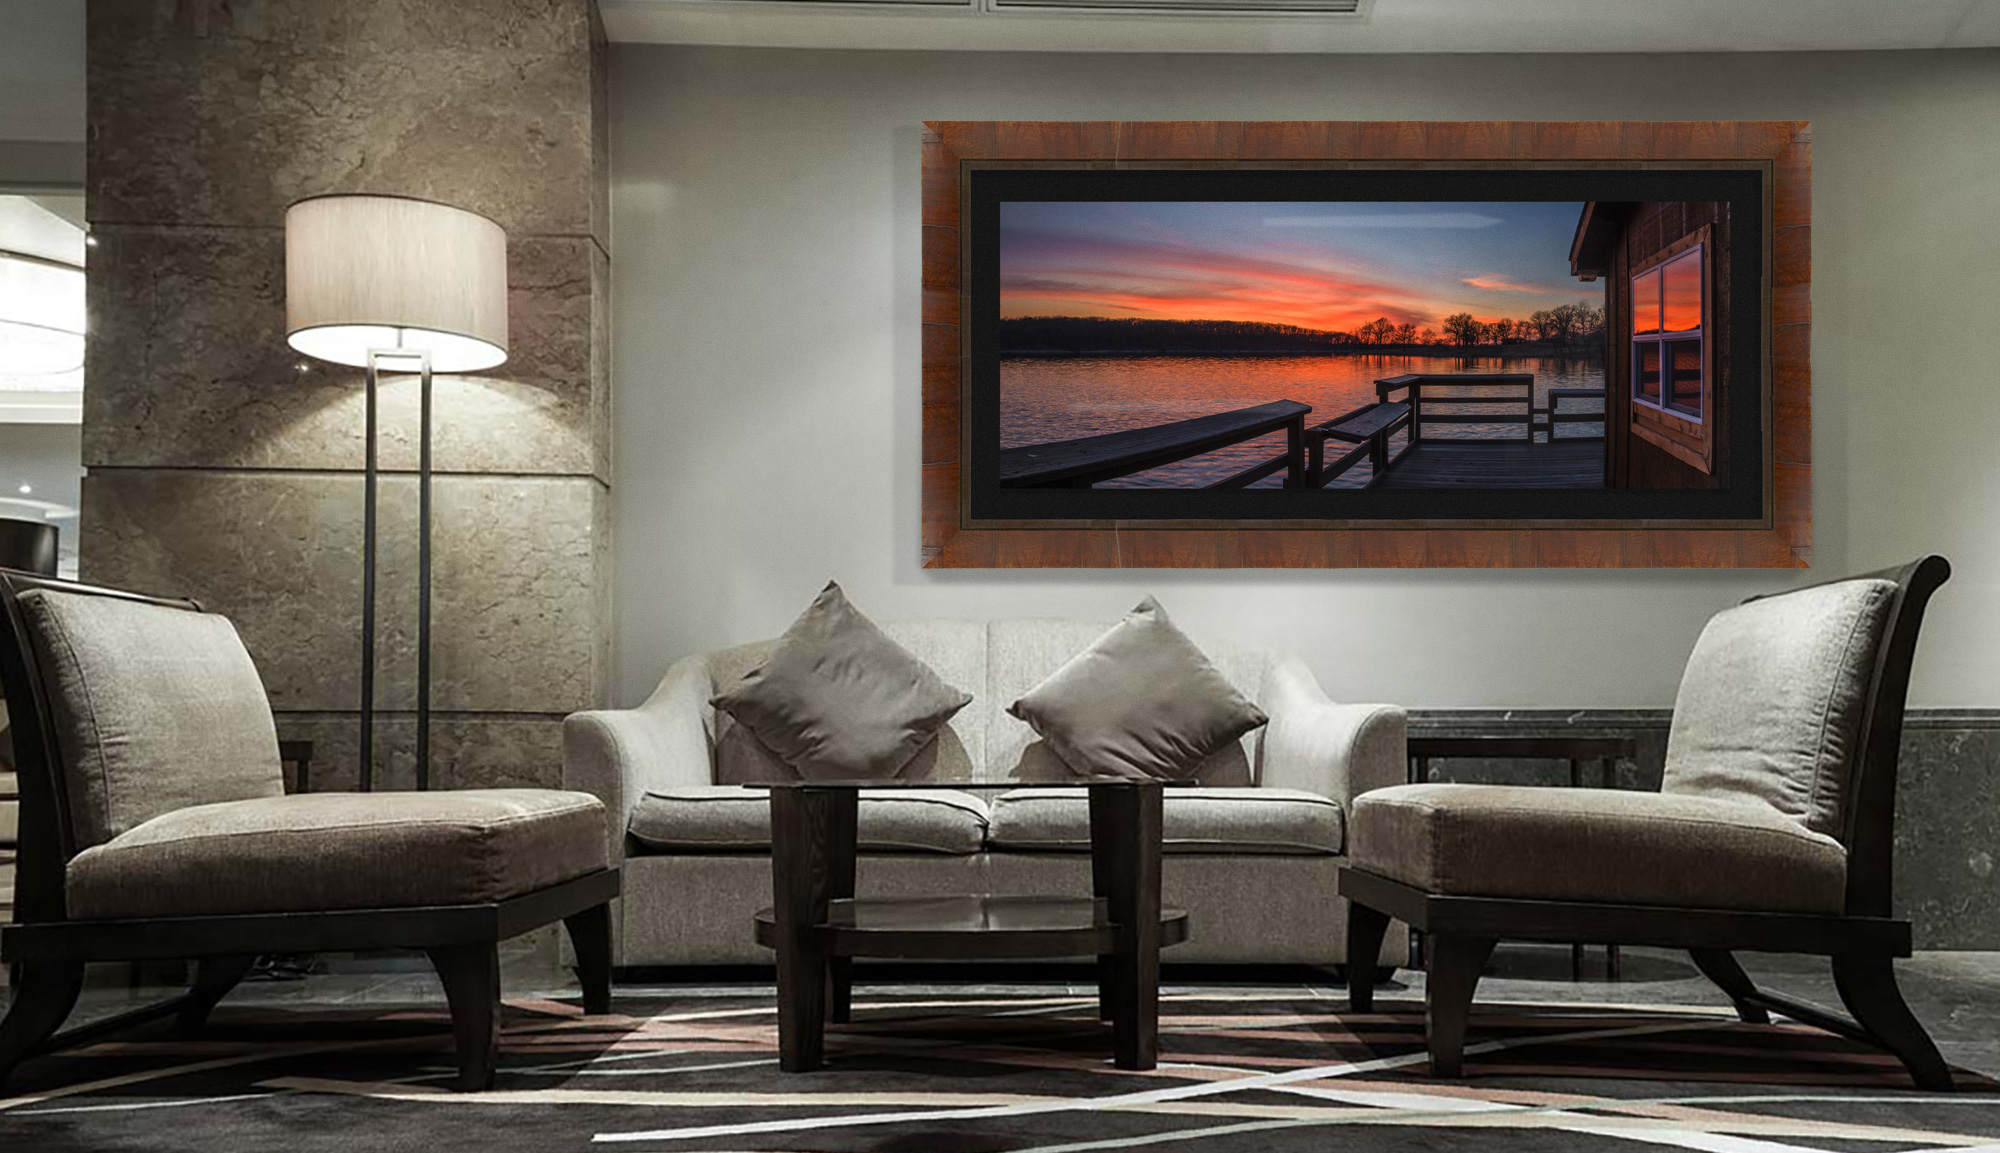 Lake Ahquabi hanging on the wall in a lobby